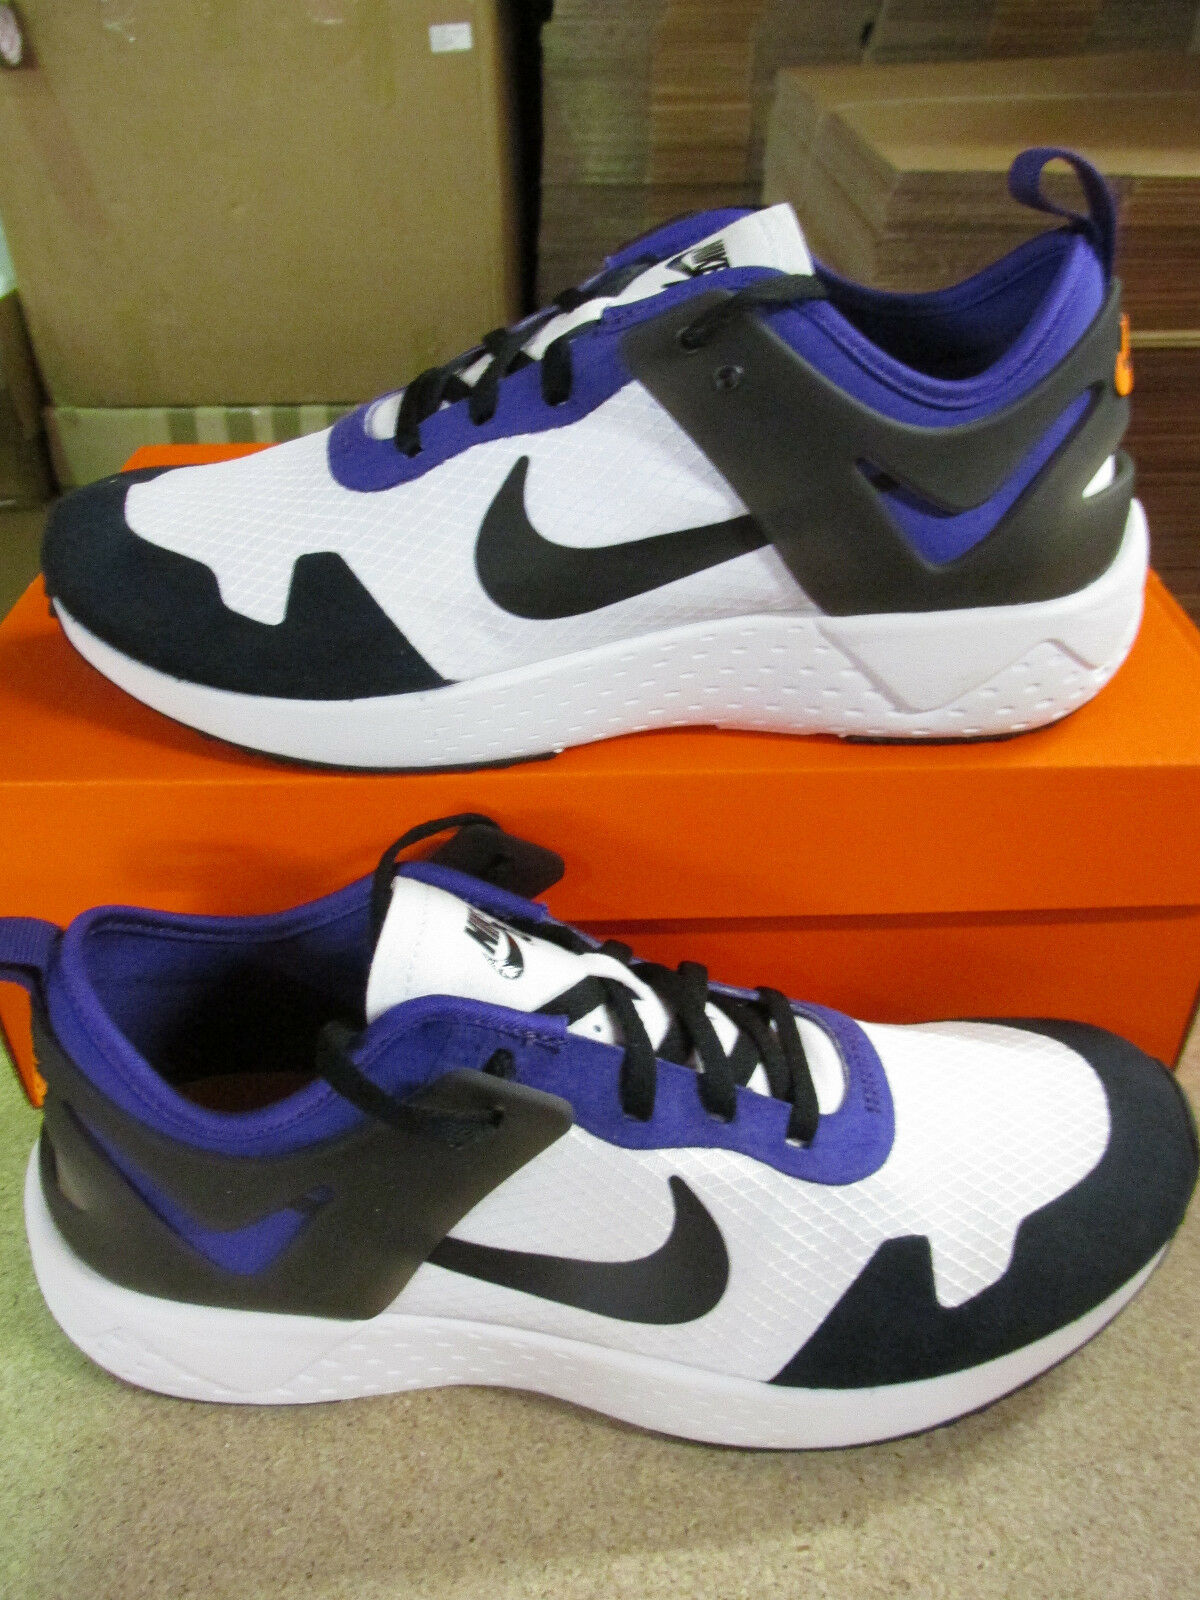 Nike Zoom Lite QS Mens Trainers 850560 105 Sneakers Shoes